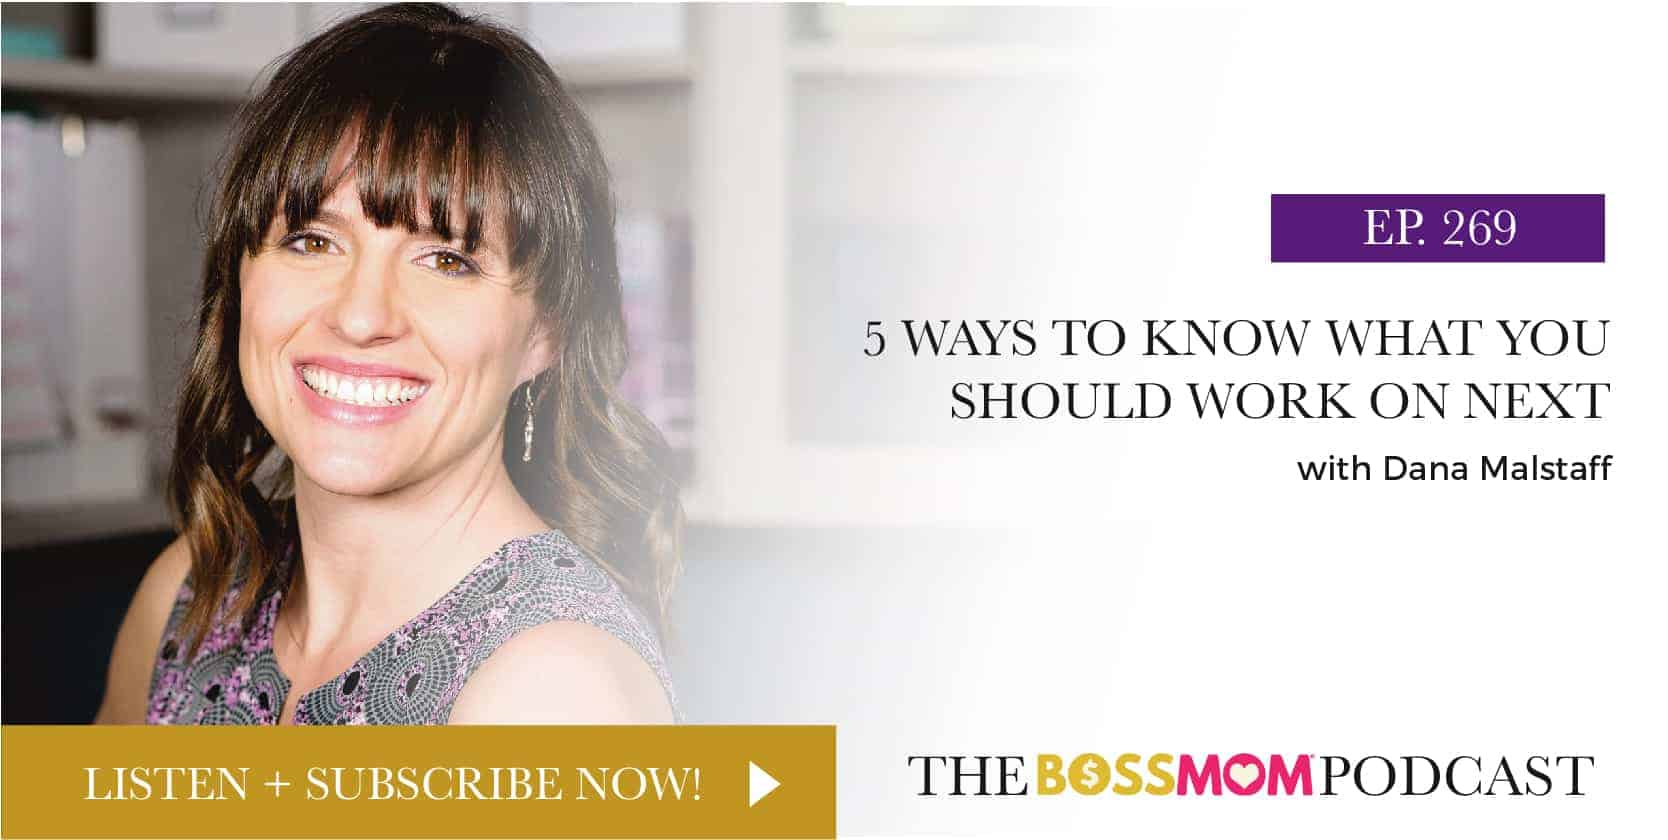 Episode 269: 5 Ways to Know What You Should Work on Next